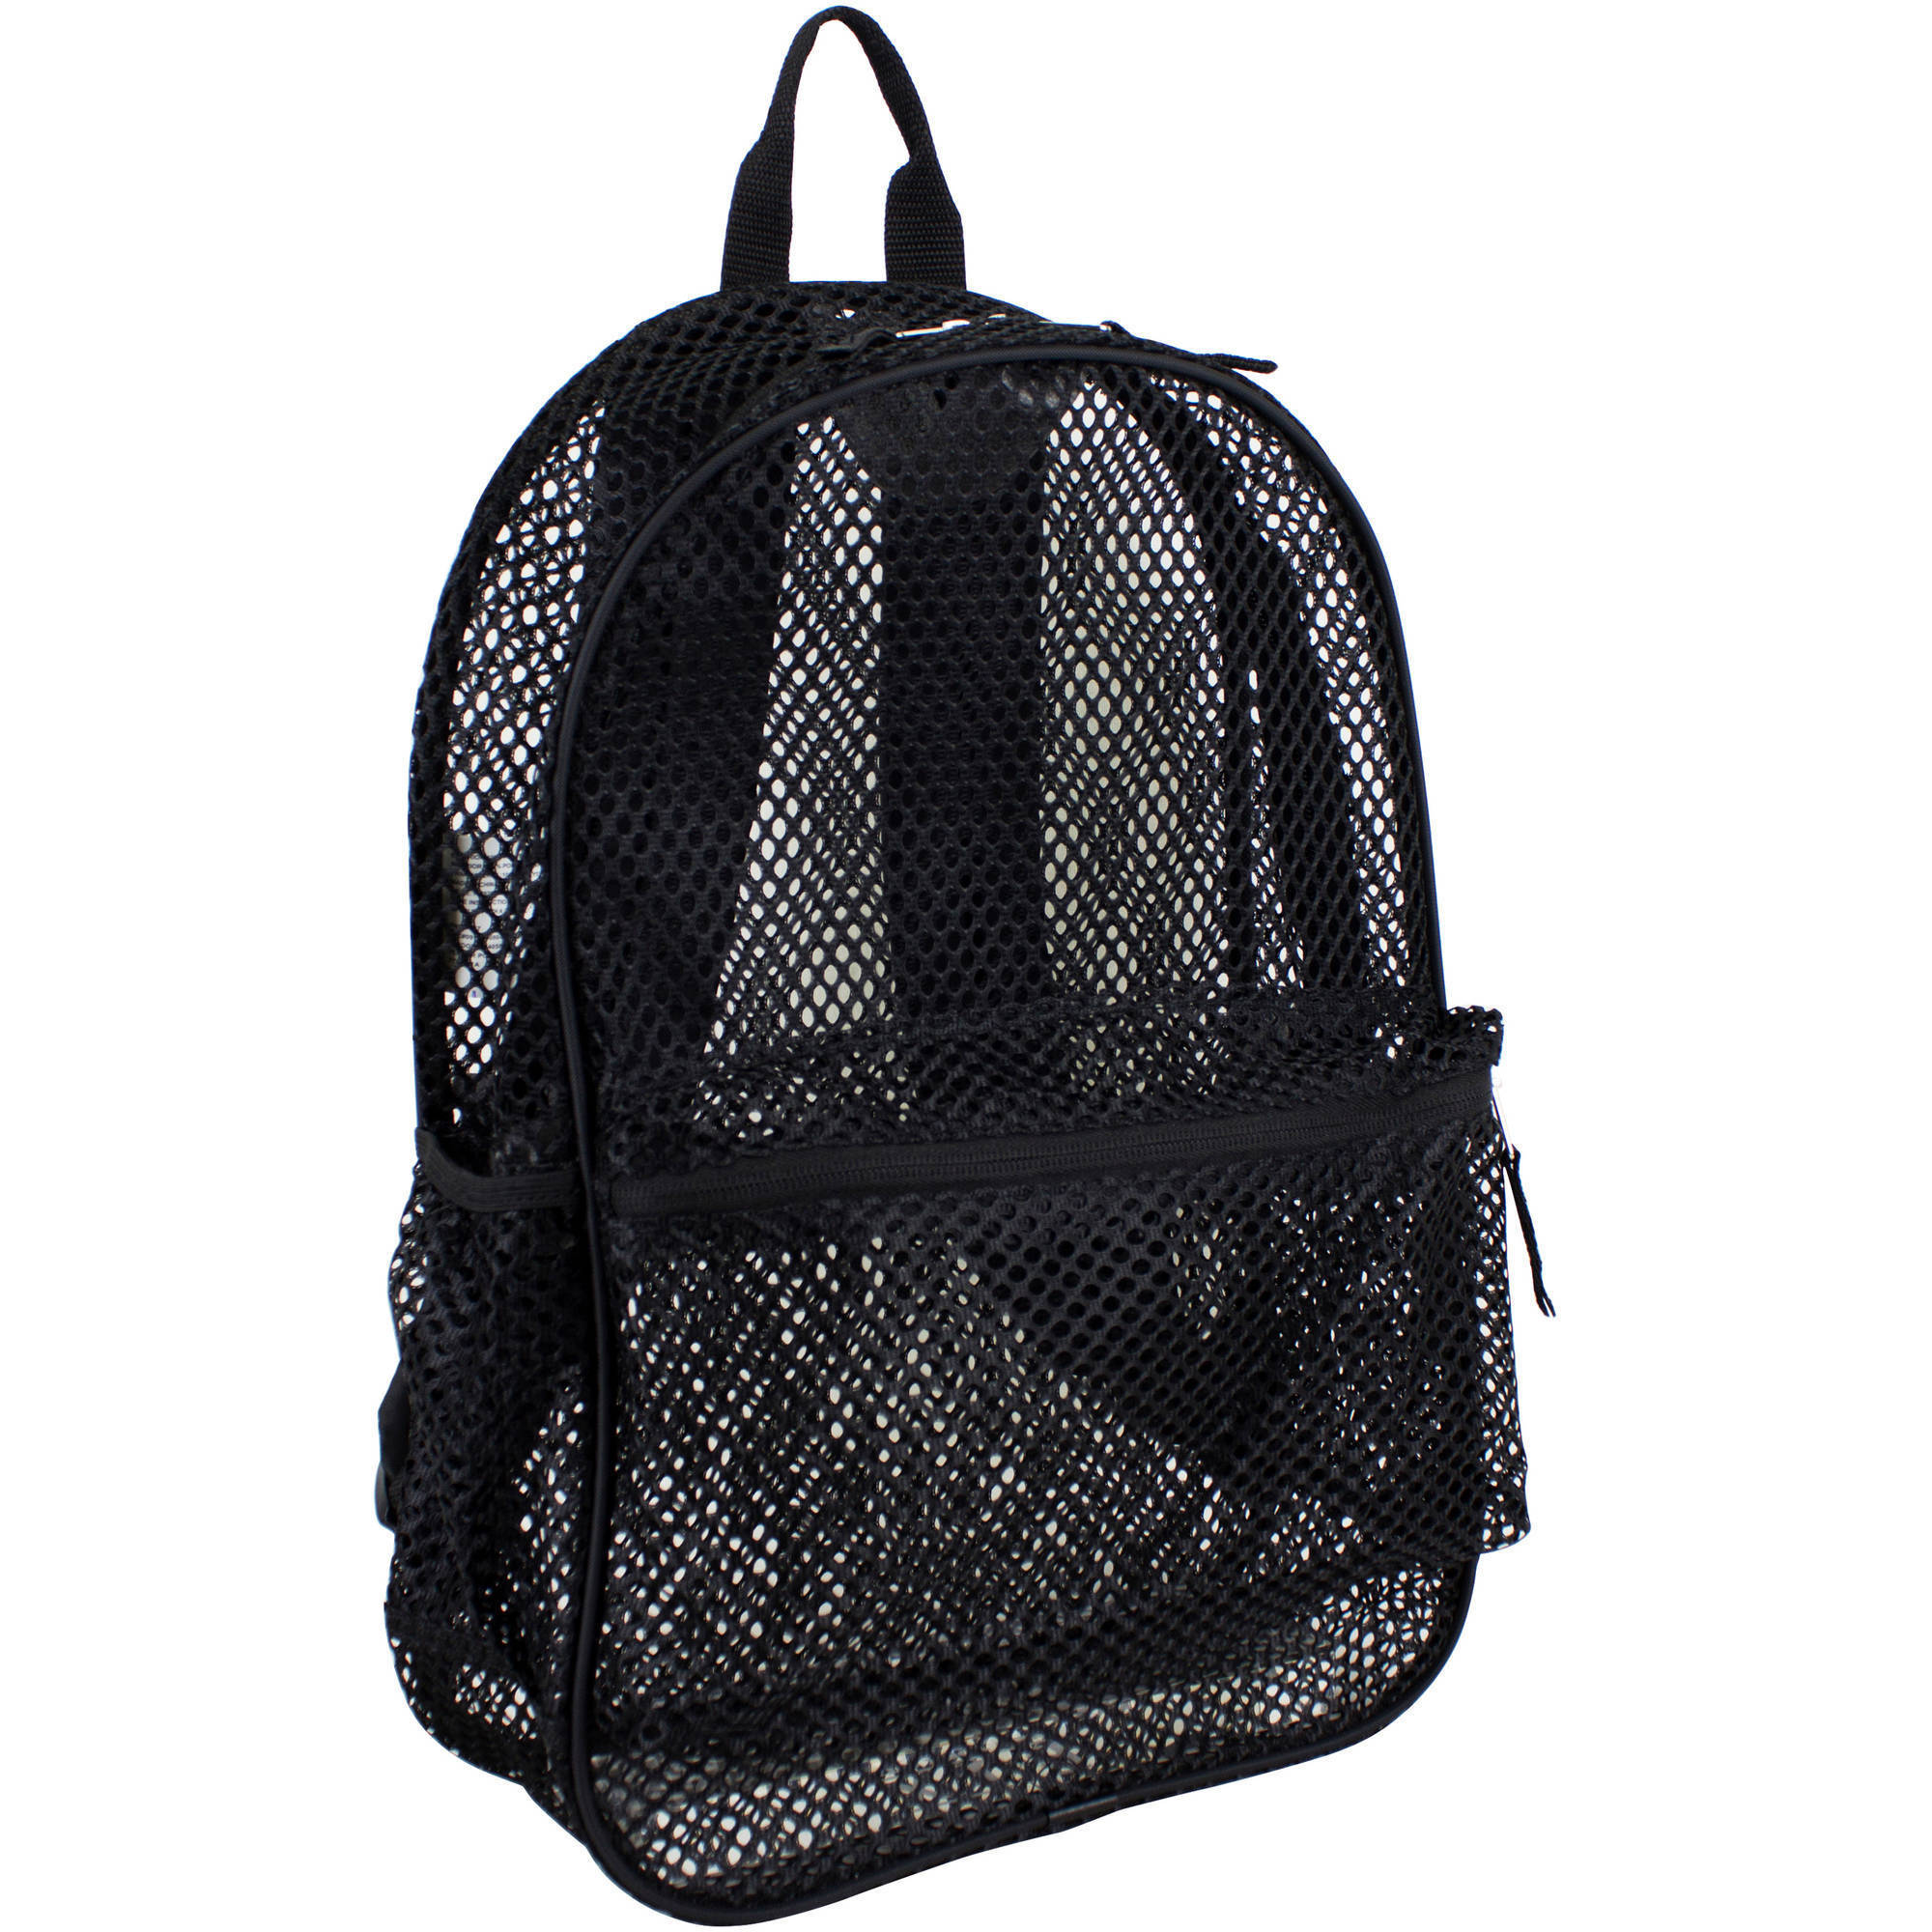 mesh backpacks